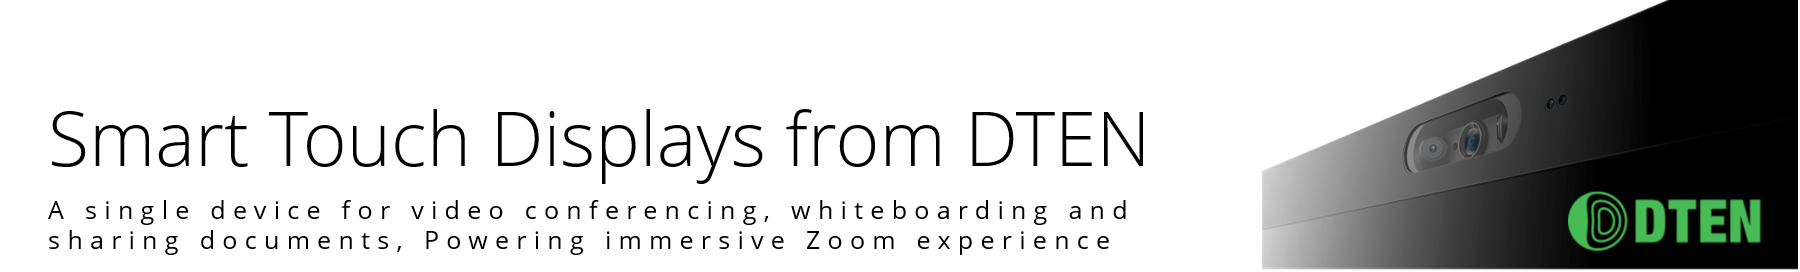 DTEN ON 55 inch Zoom Rooms Display